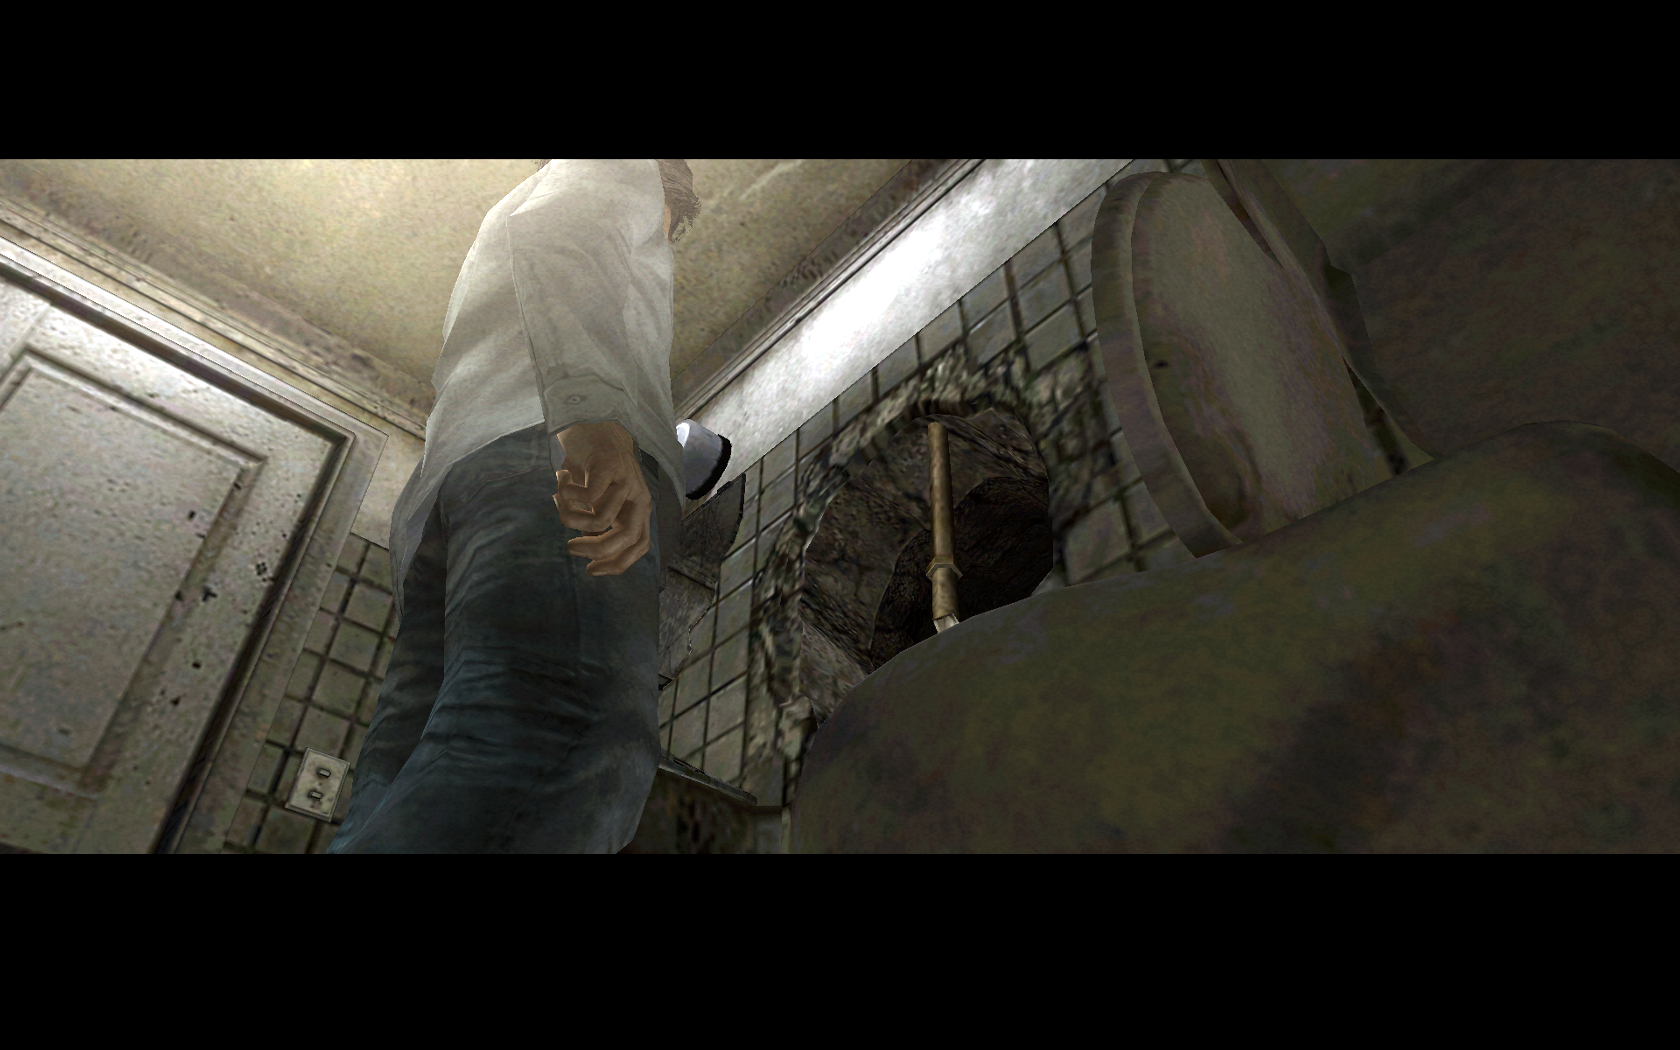 SILENT HILL 4_The Room 07.10.2020 16_37_14.png